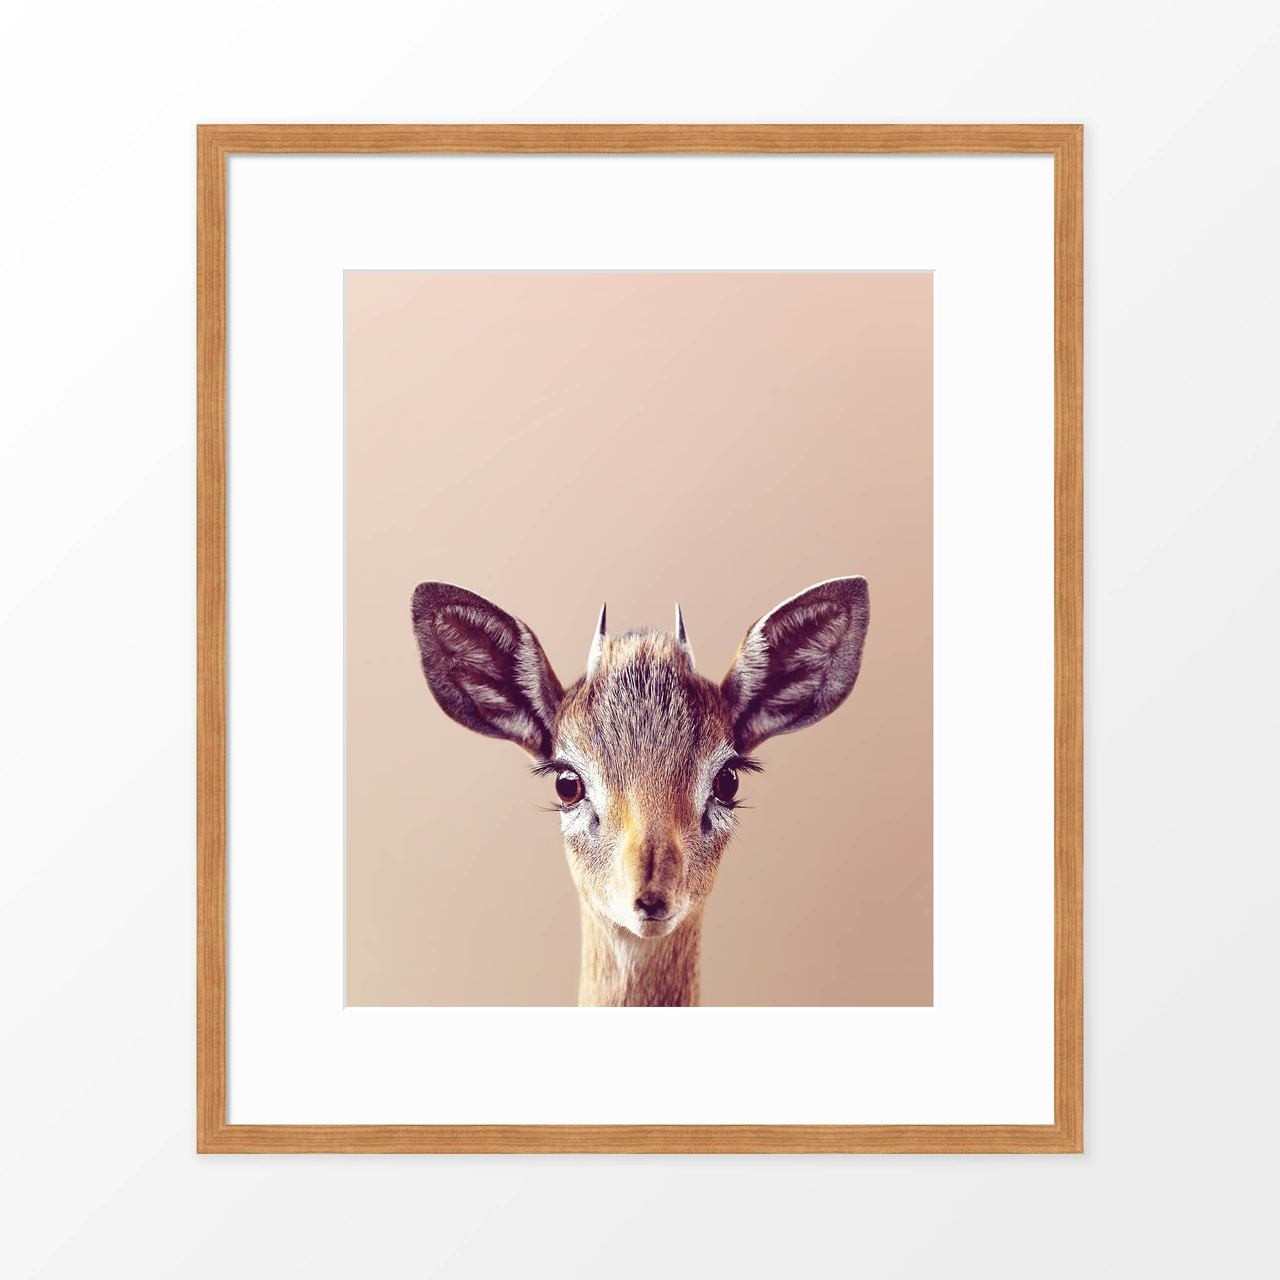 'Antelope' Modern Animal Poster from The Printed Home